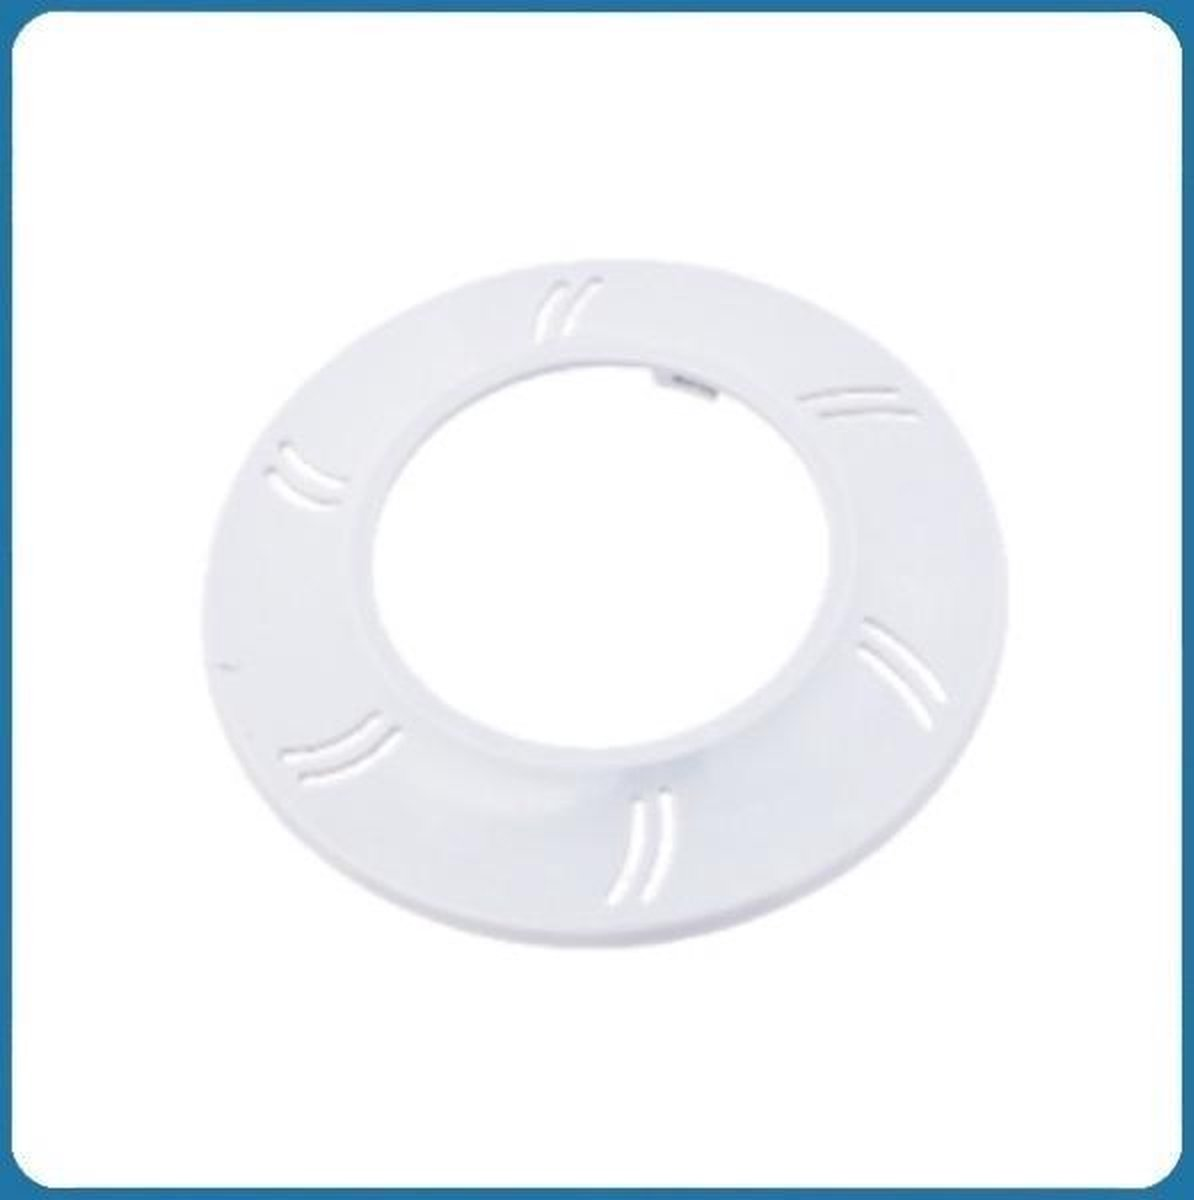 Adagio+ Zwembadverlichting LED Witte front ring lamp PLA170